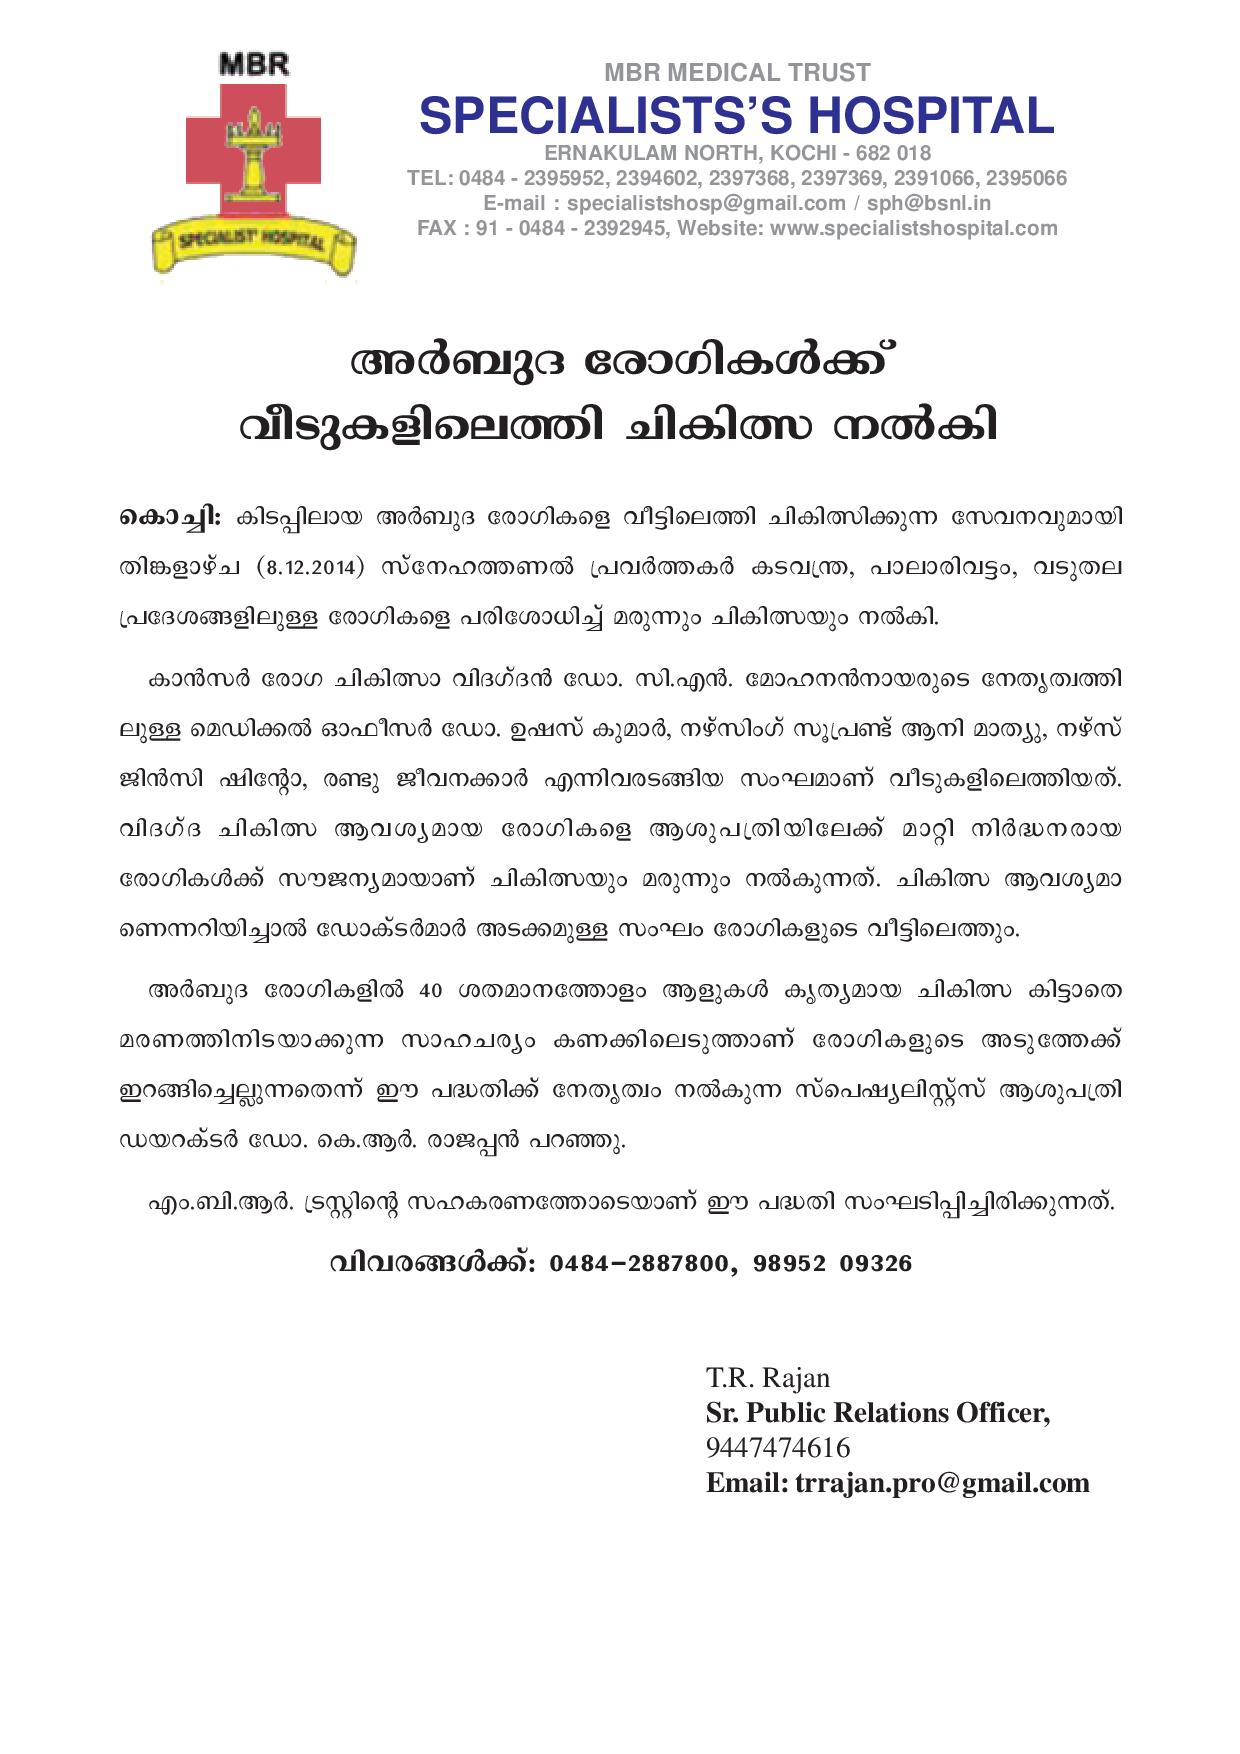 25251Press-Release-Doctors-visited-Cancer-Patients-page-001.jpg